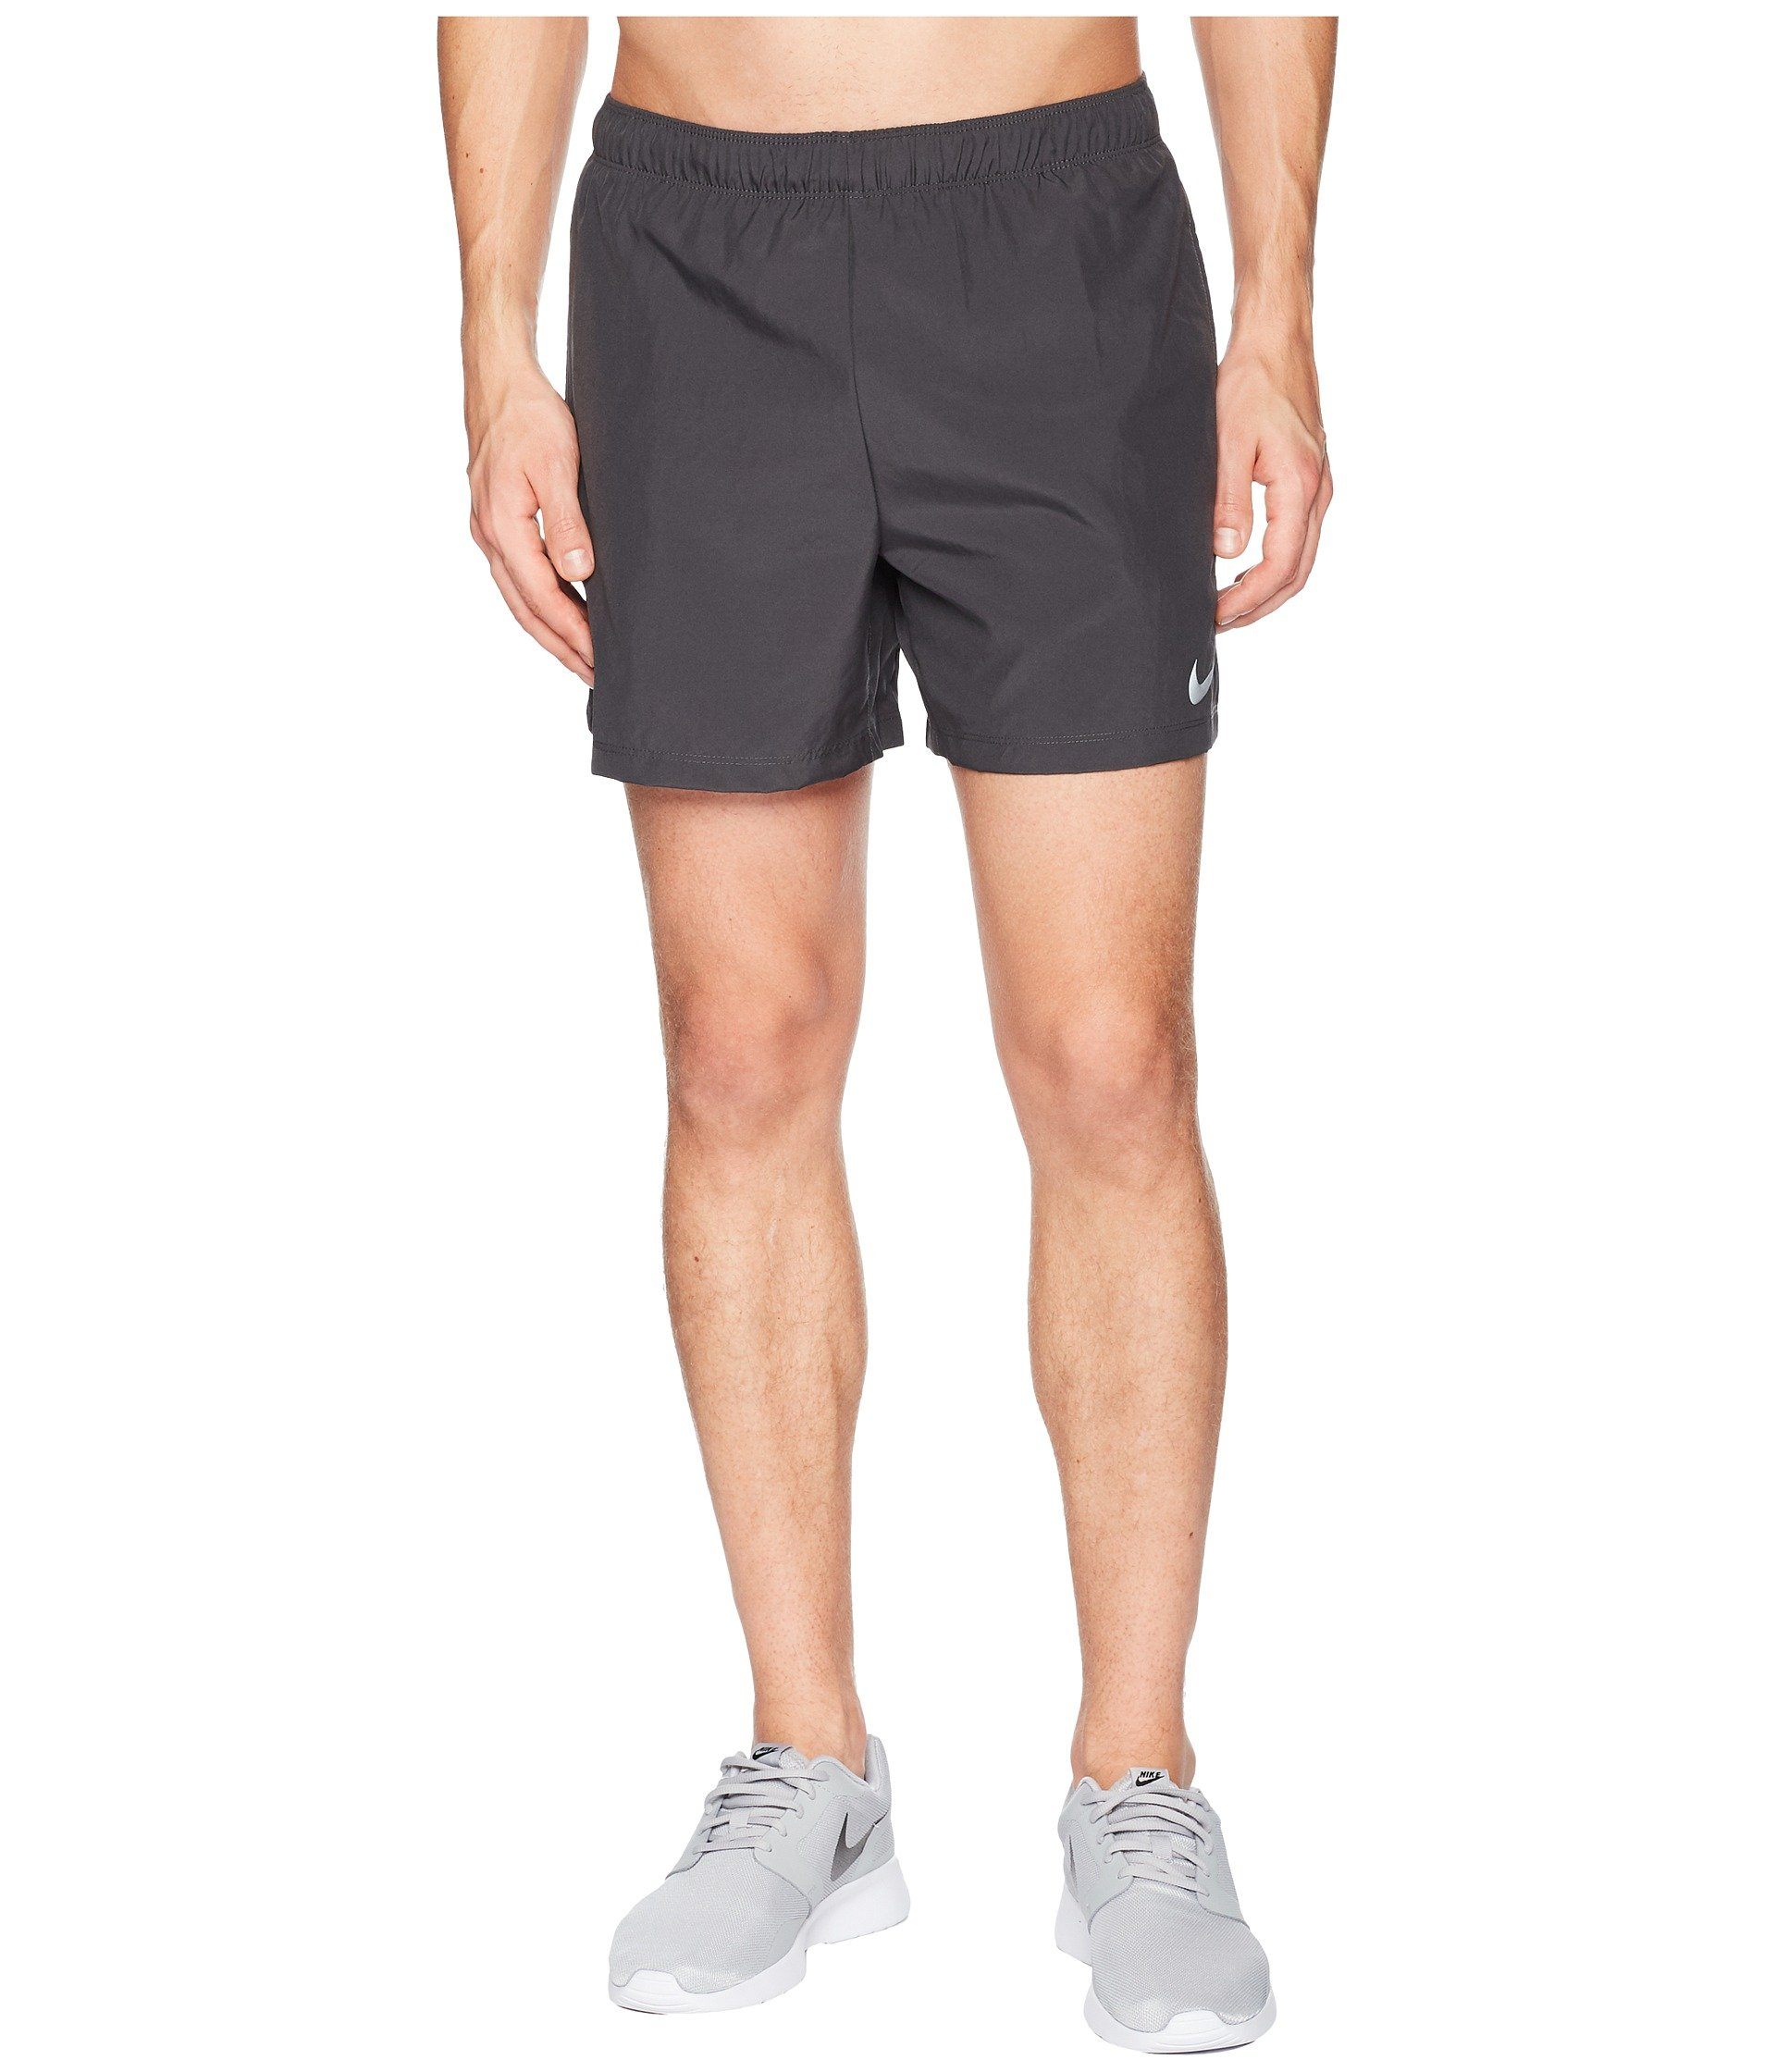 NIKE Challenger Running Shorts Men's (Anthracite, XL) by Nike (Image #1)